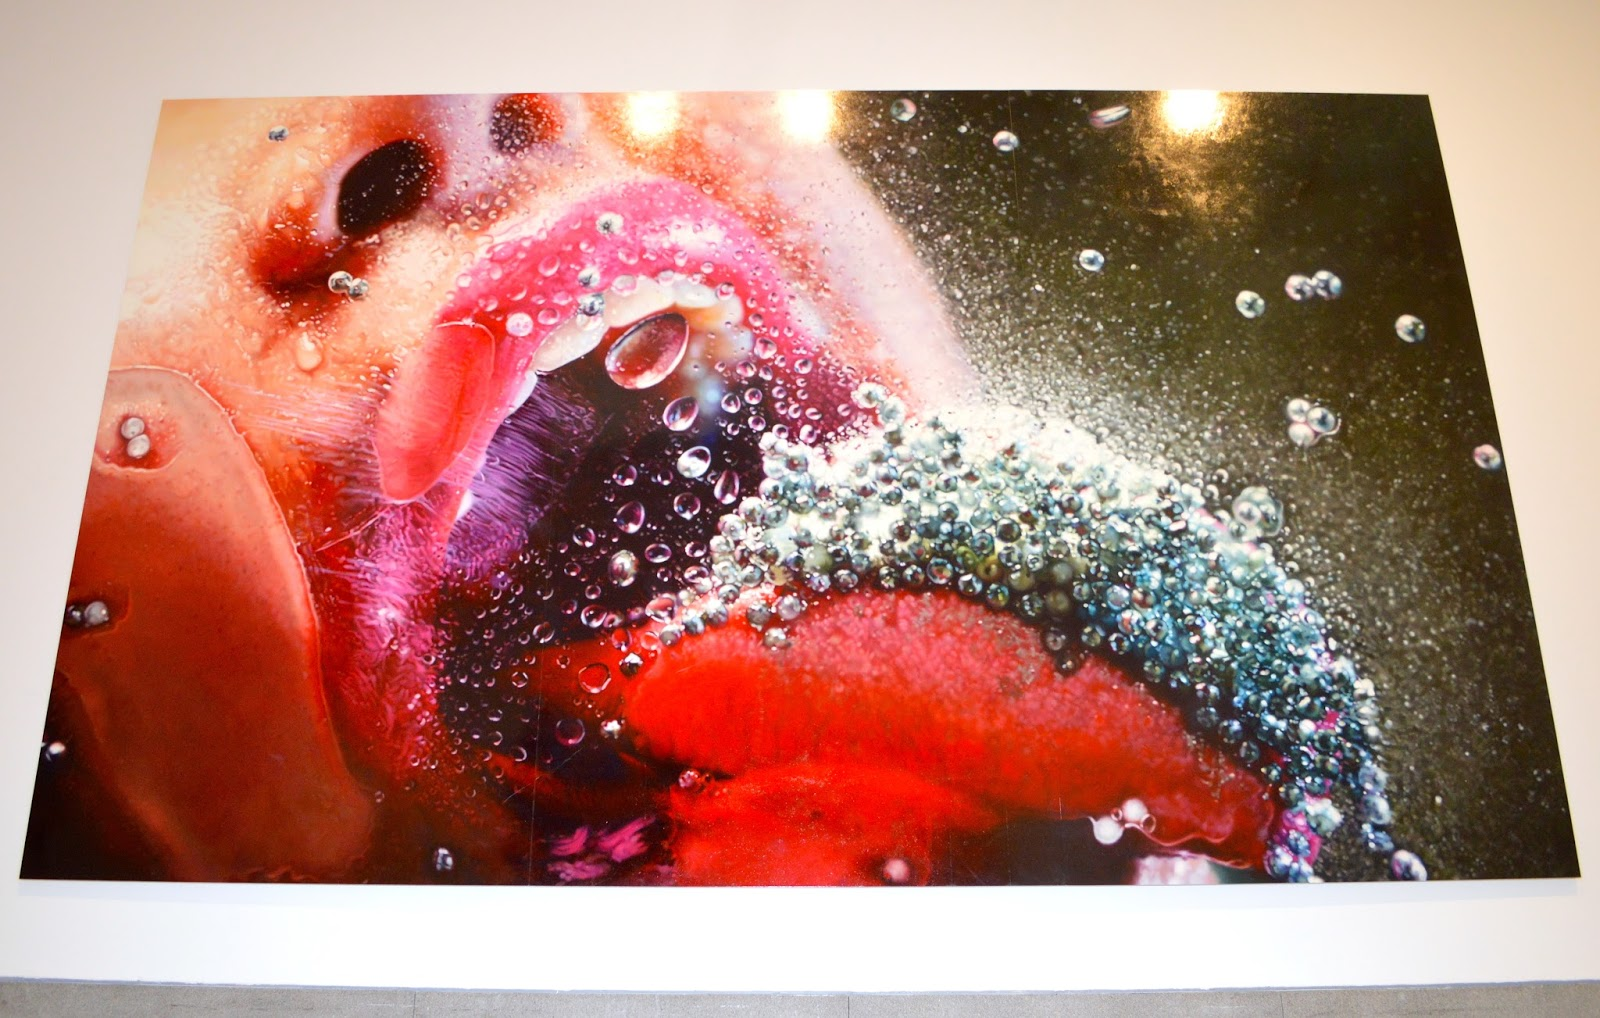 Marilyn minter food porn